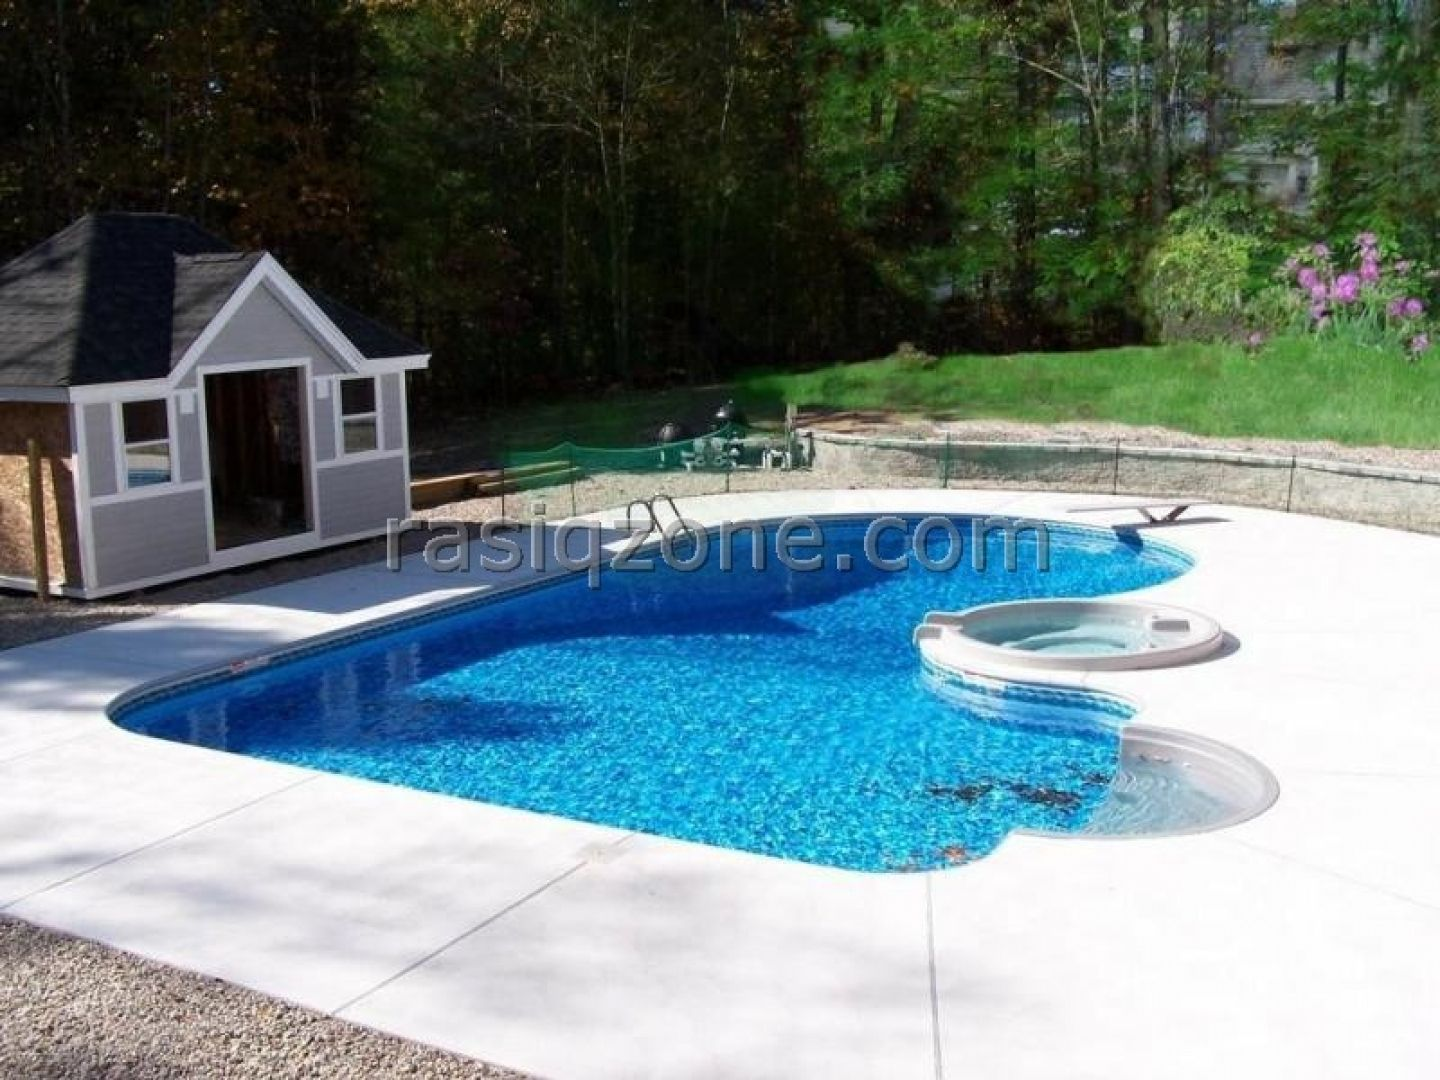 Inground pools kids will love pool designs backyard for Pool design shapes